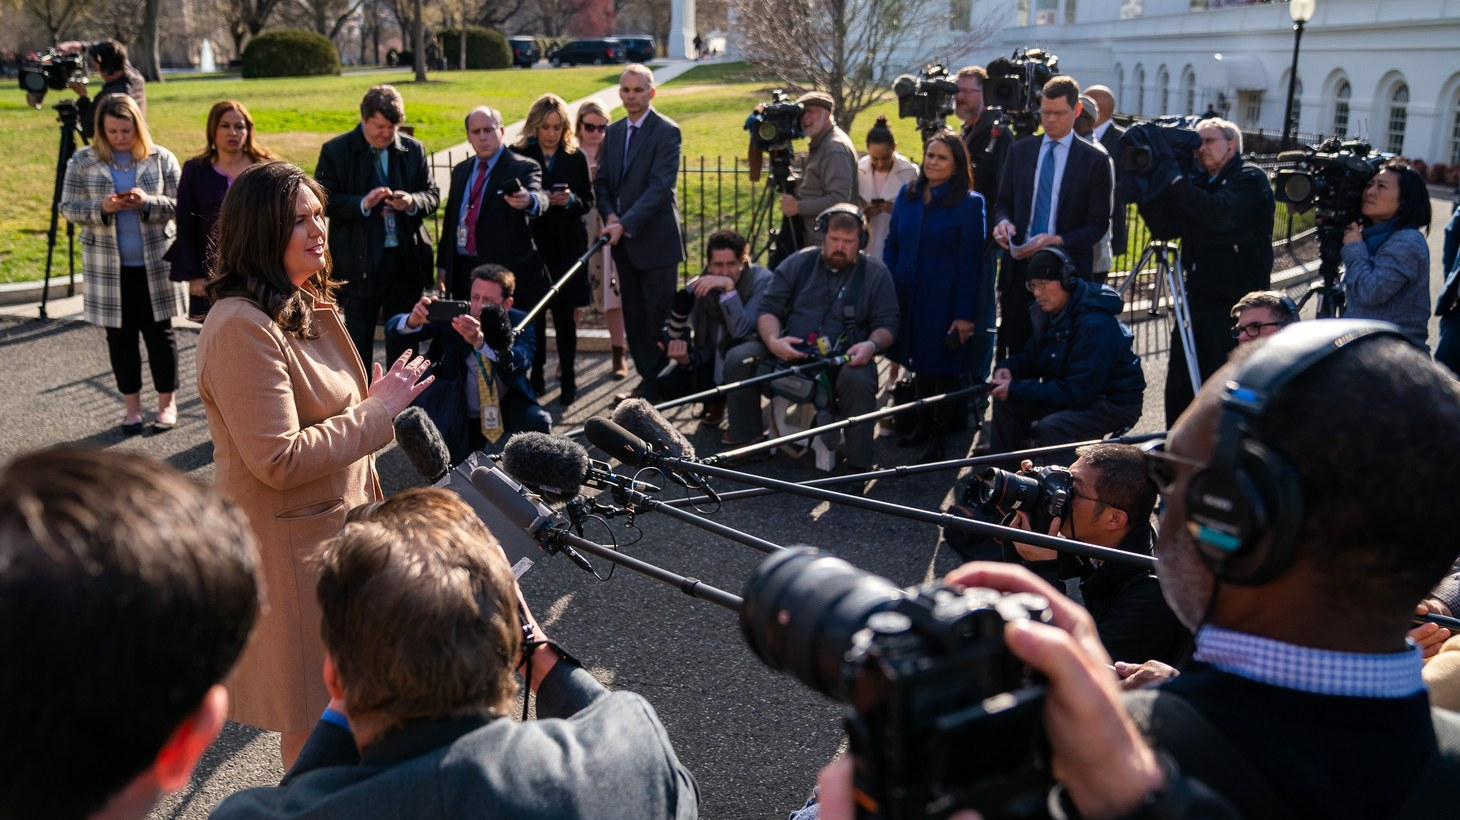 White House Press Secretary Sarah Sanders meets with reporters Monday morning, March 25, 2019, on the driveway outside the West Wing entrance to the White House.